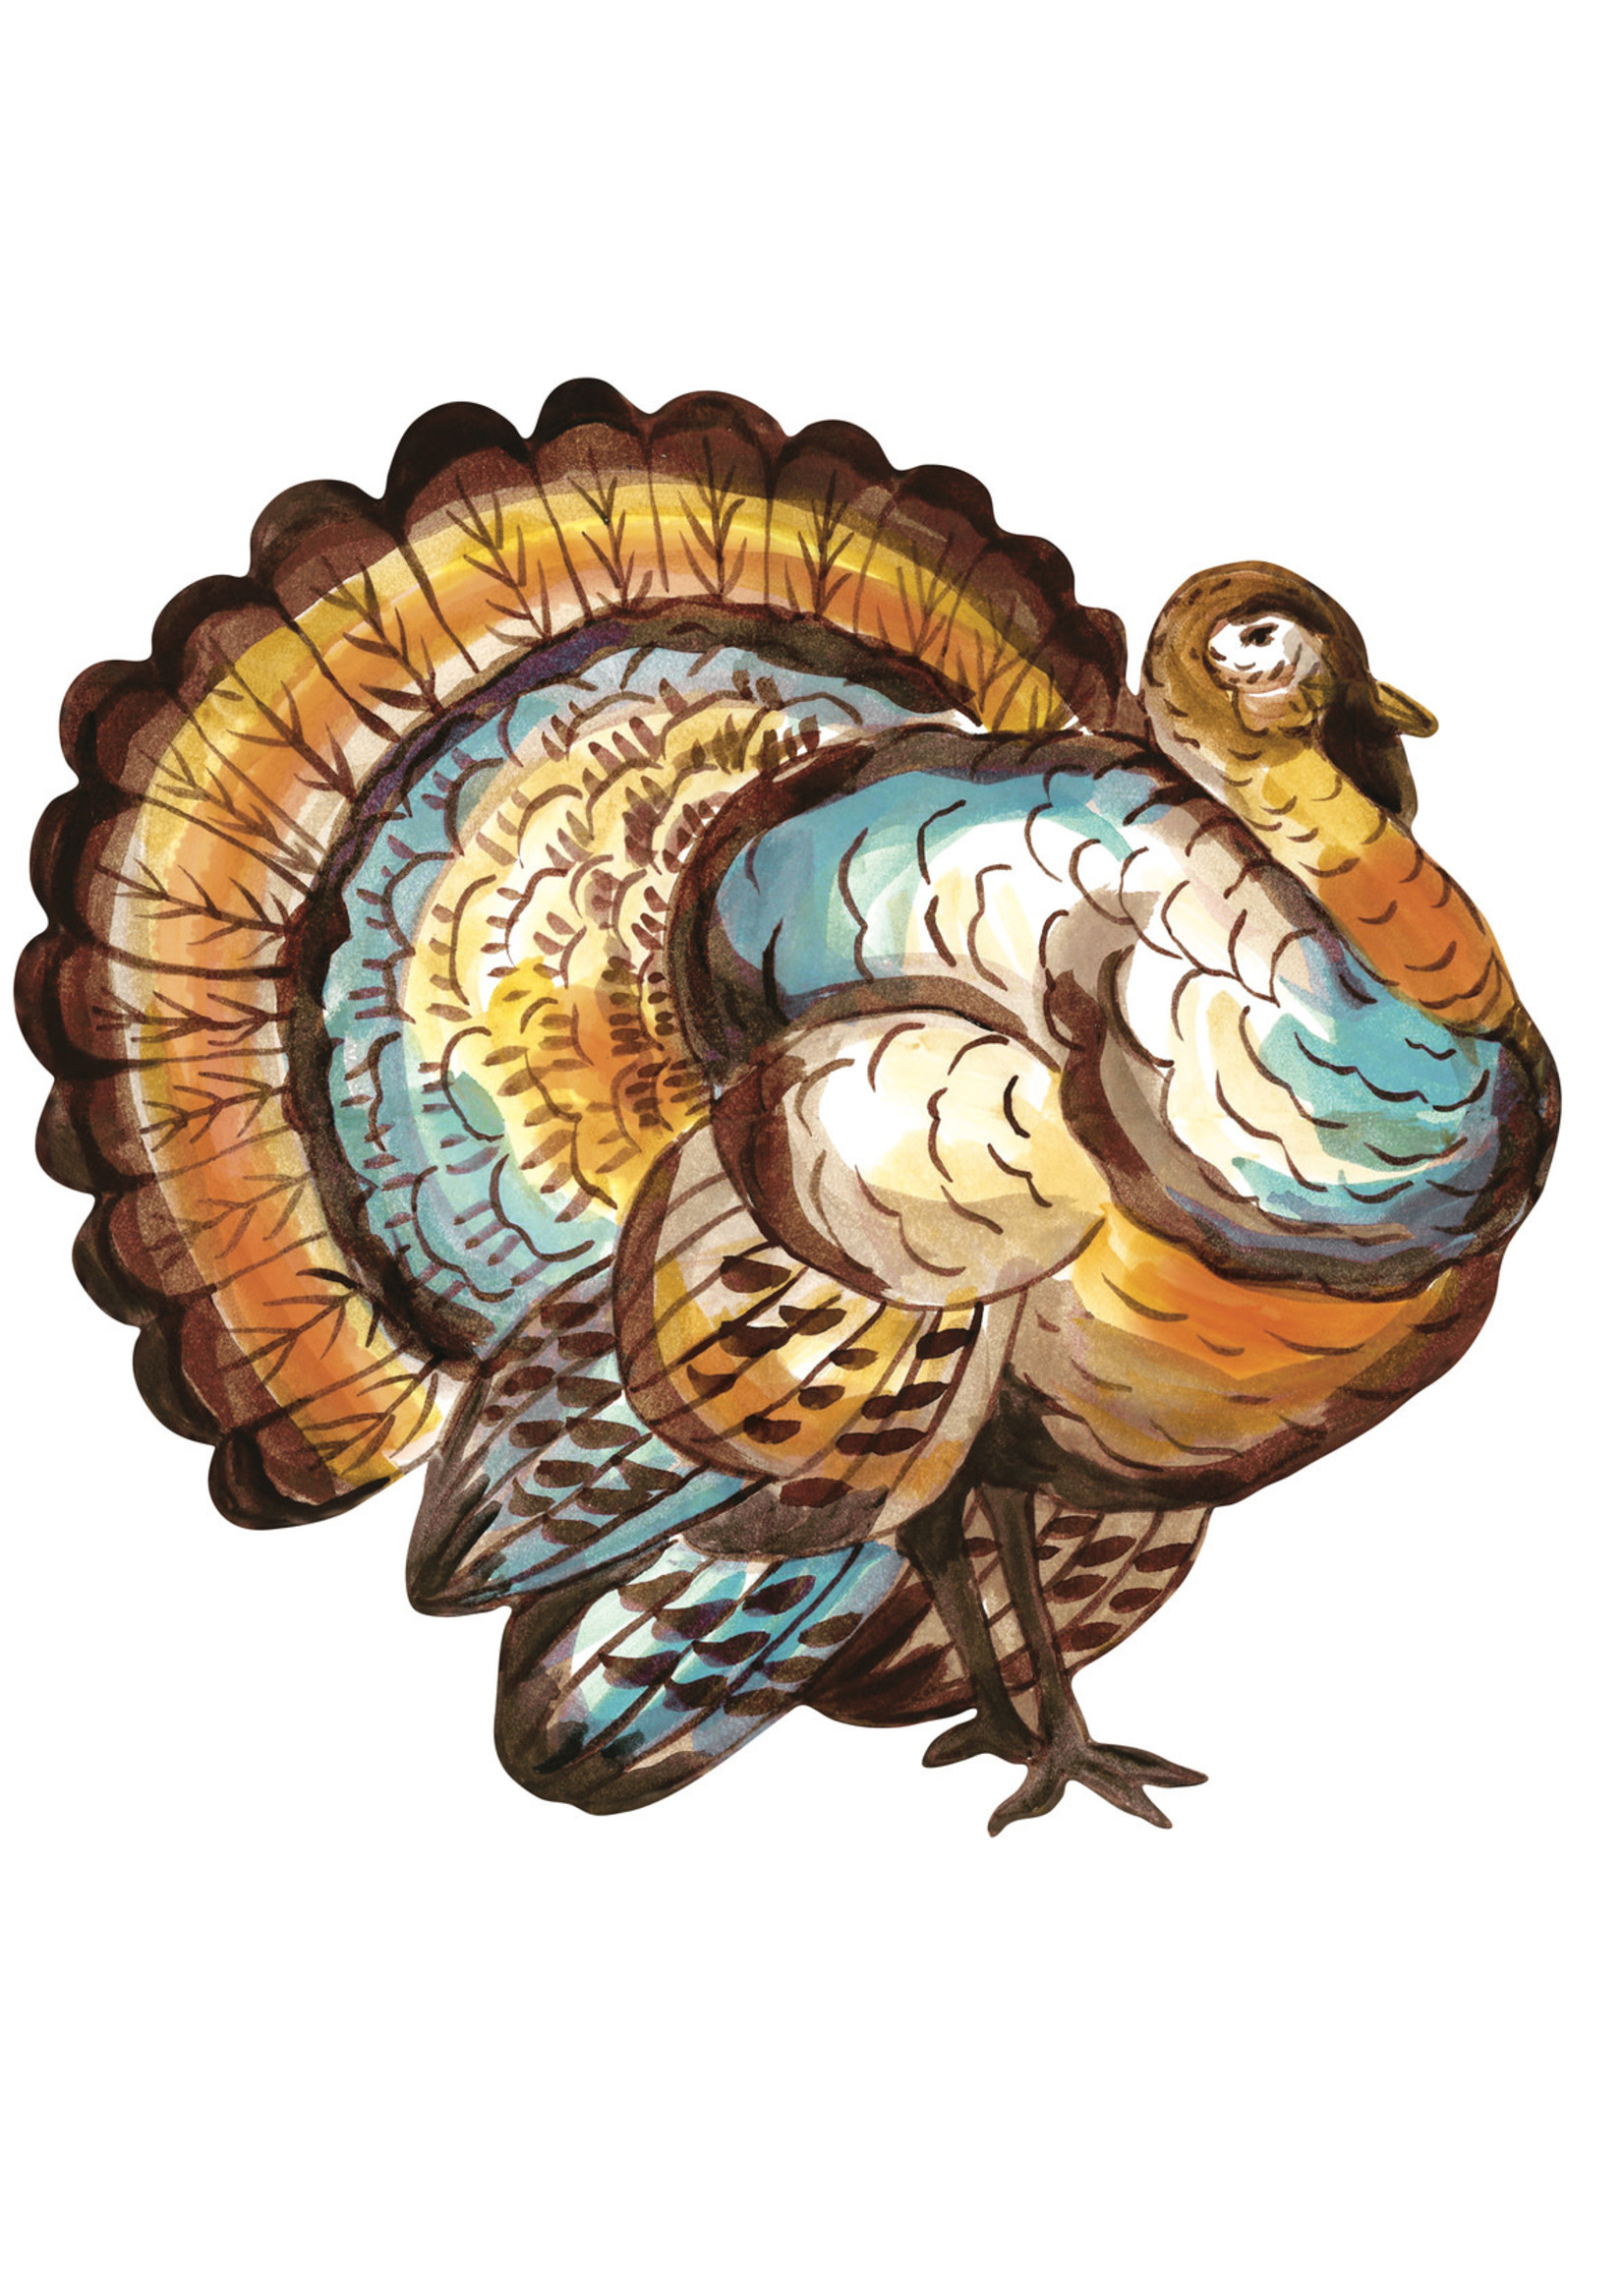 Hester & Cook Paper Placemats - Thanksgiving Turkey (12 sheets)